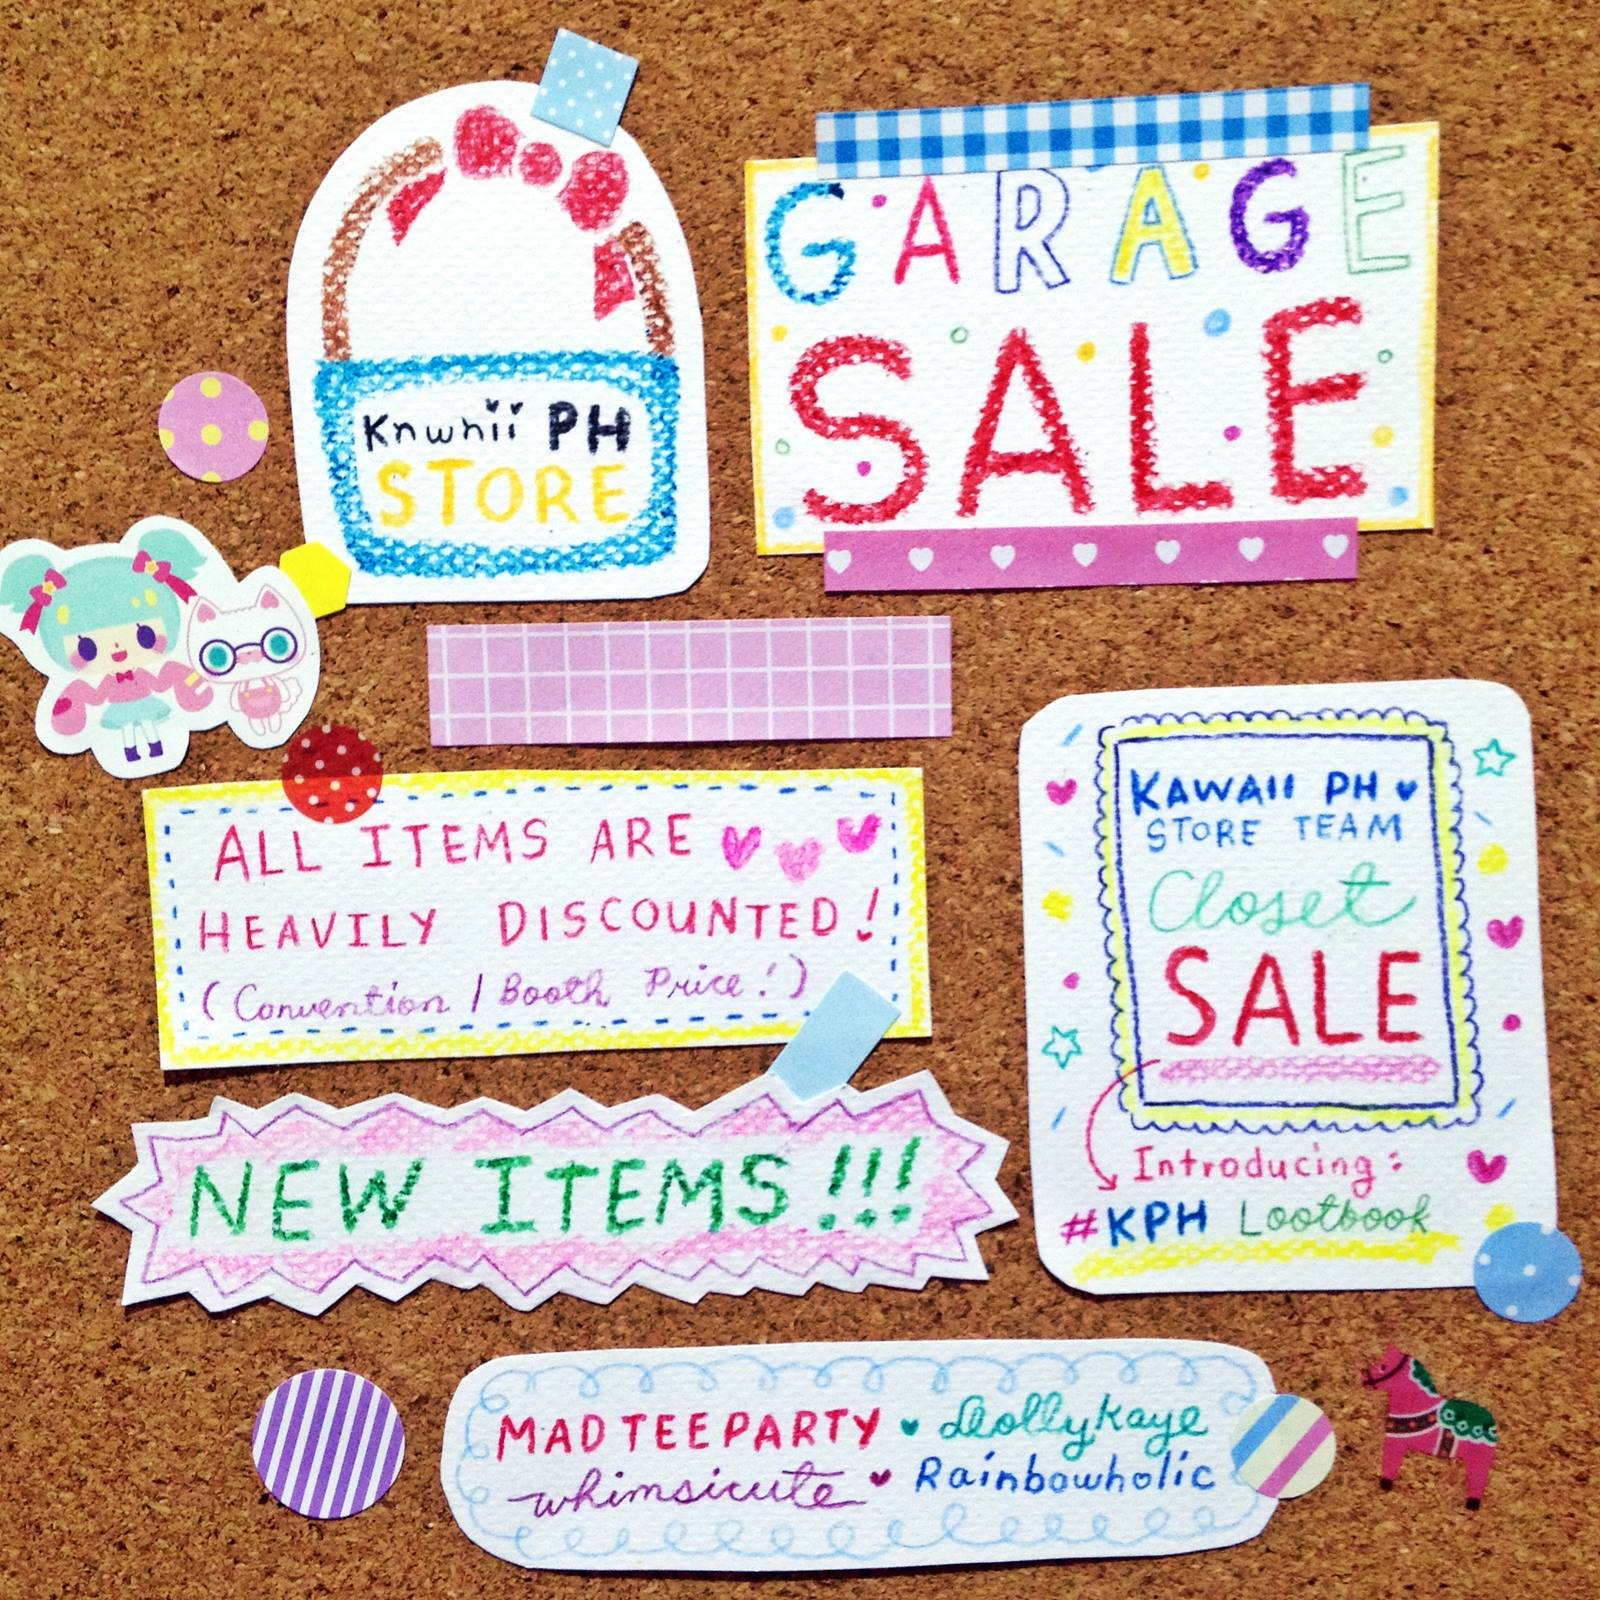 Kawaii PH Store Garage Sale